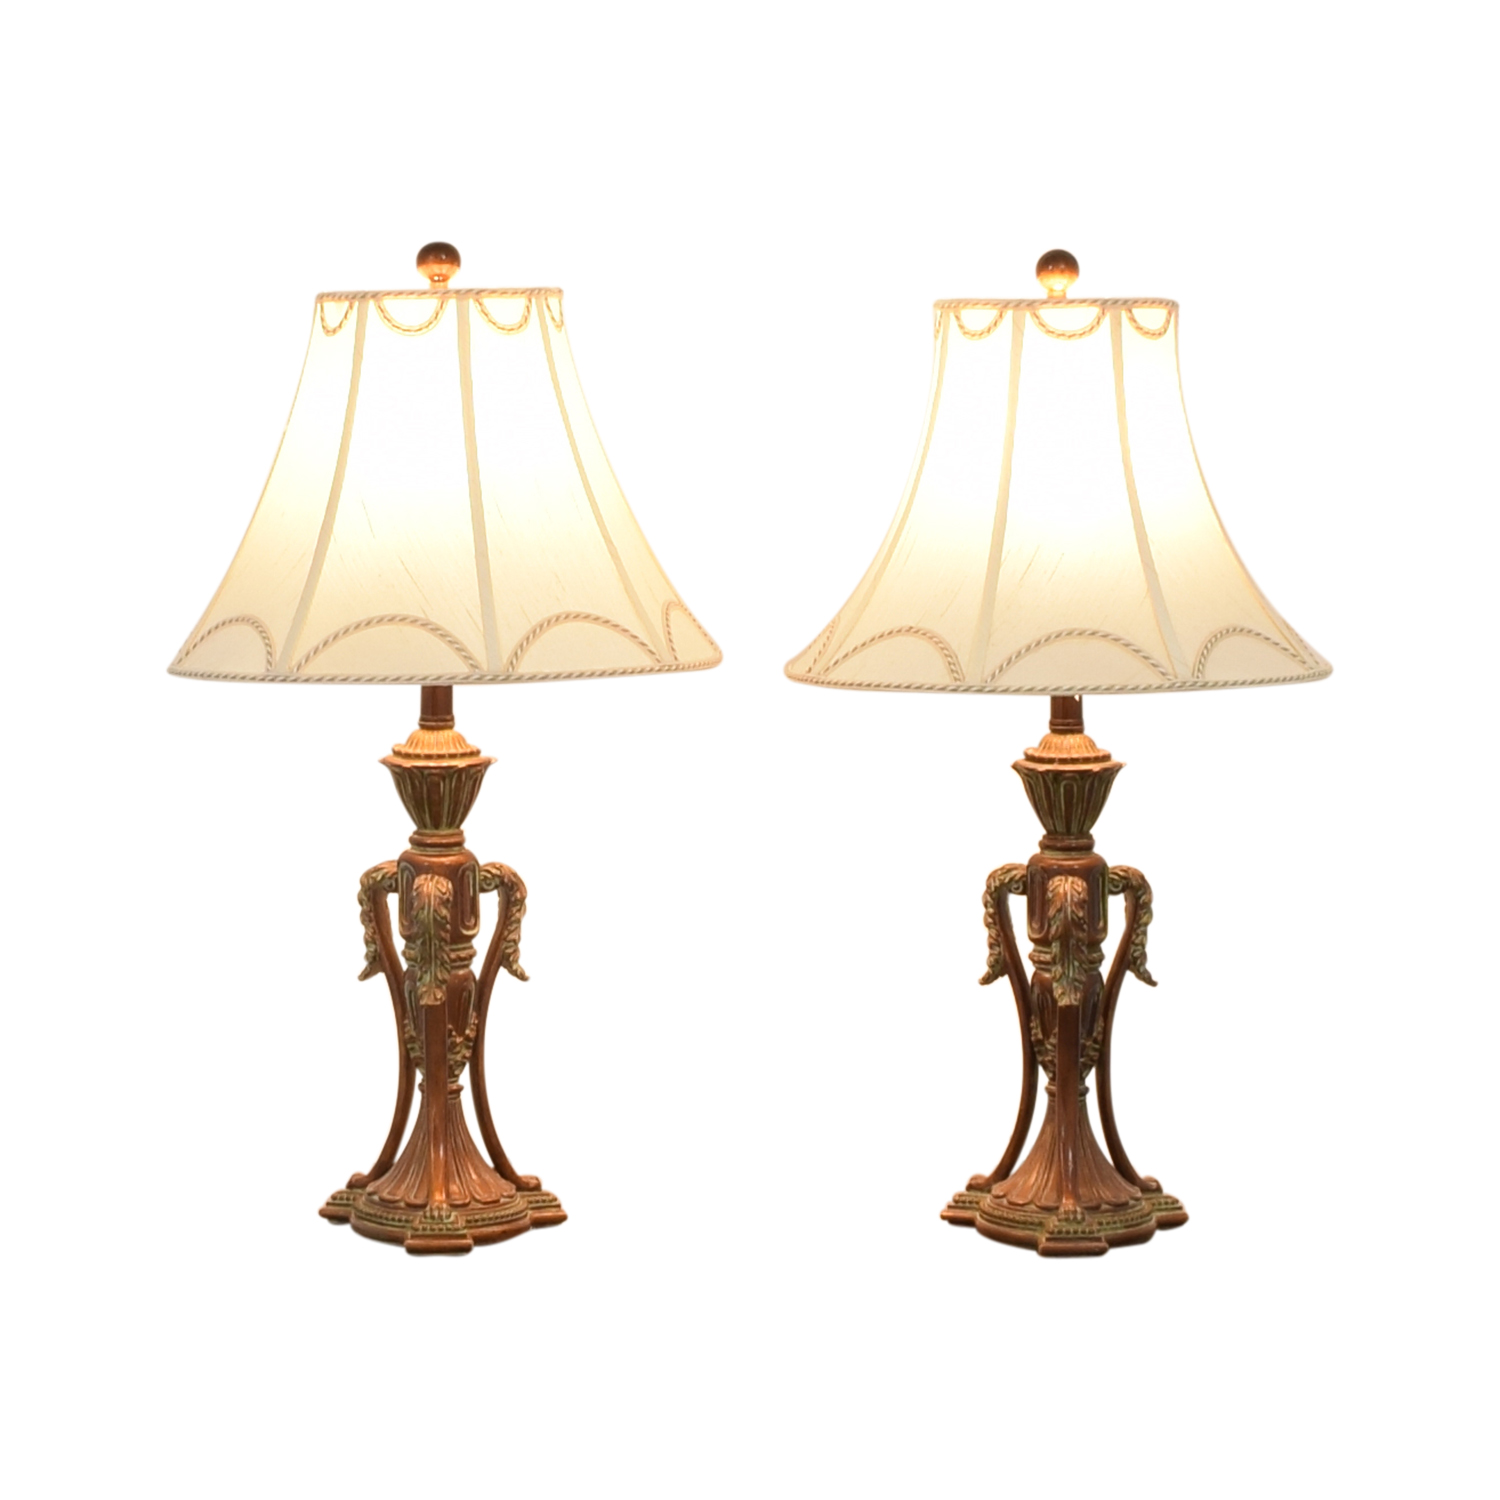 Cambridge Table Lamps nj